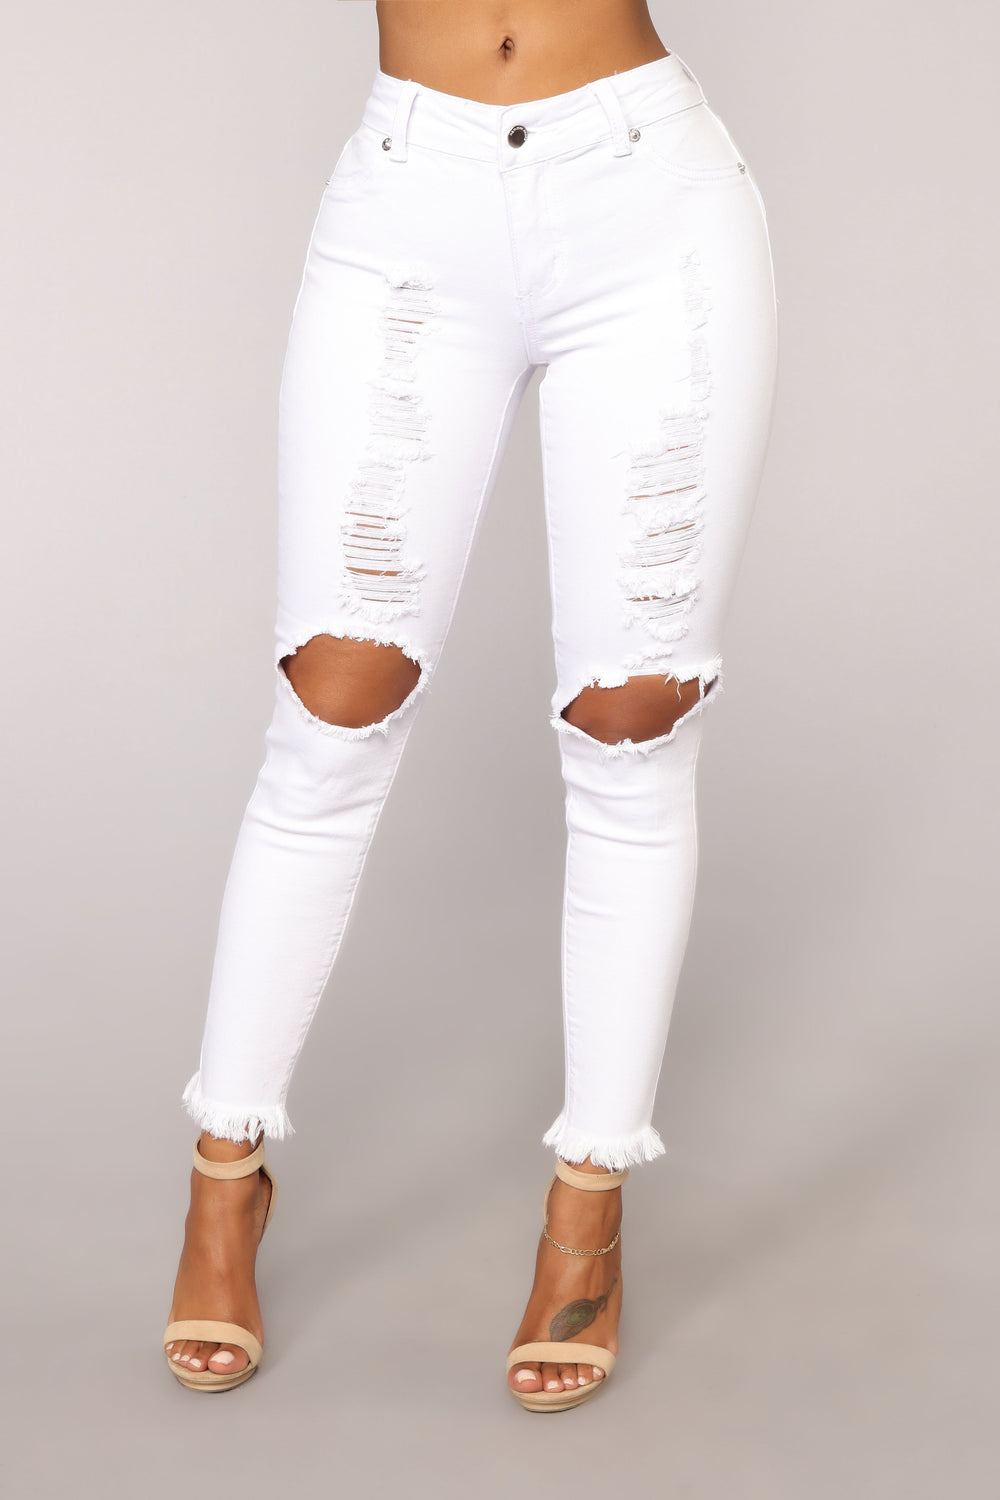 The Other Bailey Distressed Jeans - White